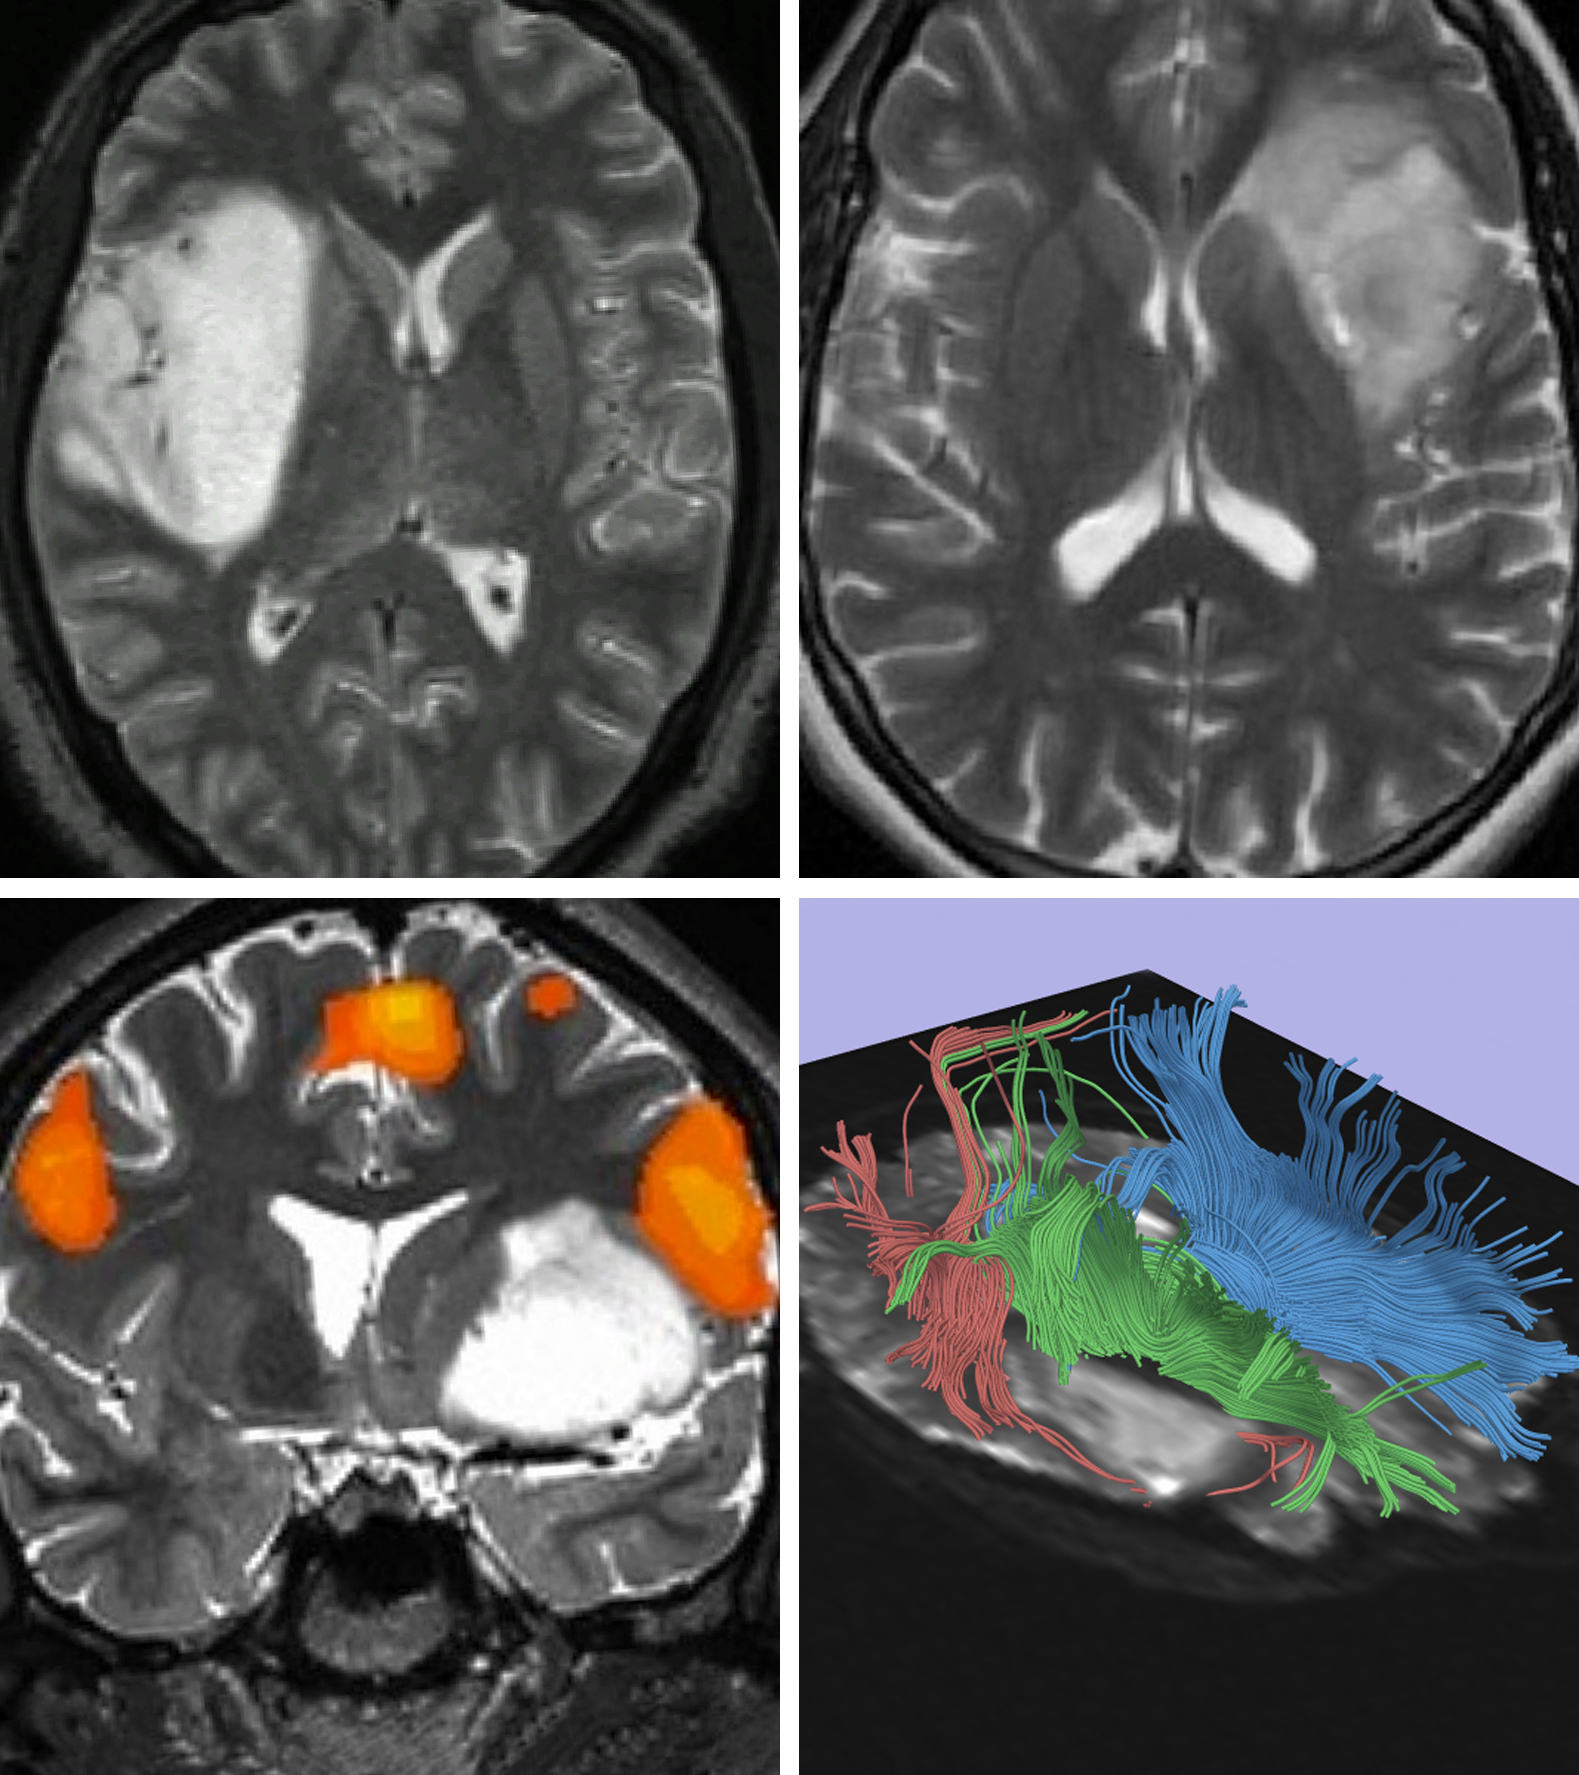 Figure 1: These images in the top row show two different patterns of insular low-grade gliomas. The upper images show the different degrees of diffuseness for tumor margins. Adequate resection of diffuse insular tumors can be very challenging and risky. Functional MRI (fMRI) and diffusion tensor imaging with fiber tracking can estimate the degree of involvement of the functional cortices and white matter tracts (lower images). In the left lower image, the motor speech area overlying the tumor is highlighted. Along with intraoperative mapping data, the fMRI information can guide the surgeon in creating safe transcortical corridors to achieve adequate tumor exposure in large tumors.